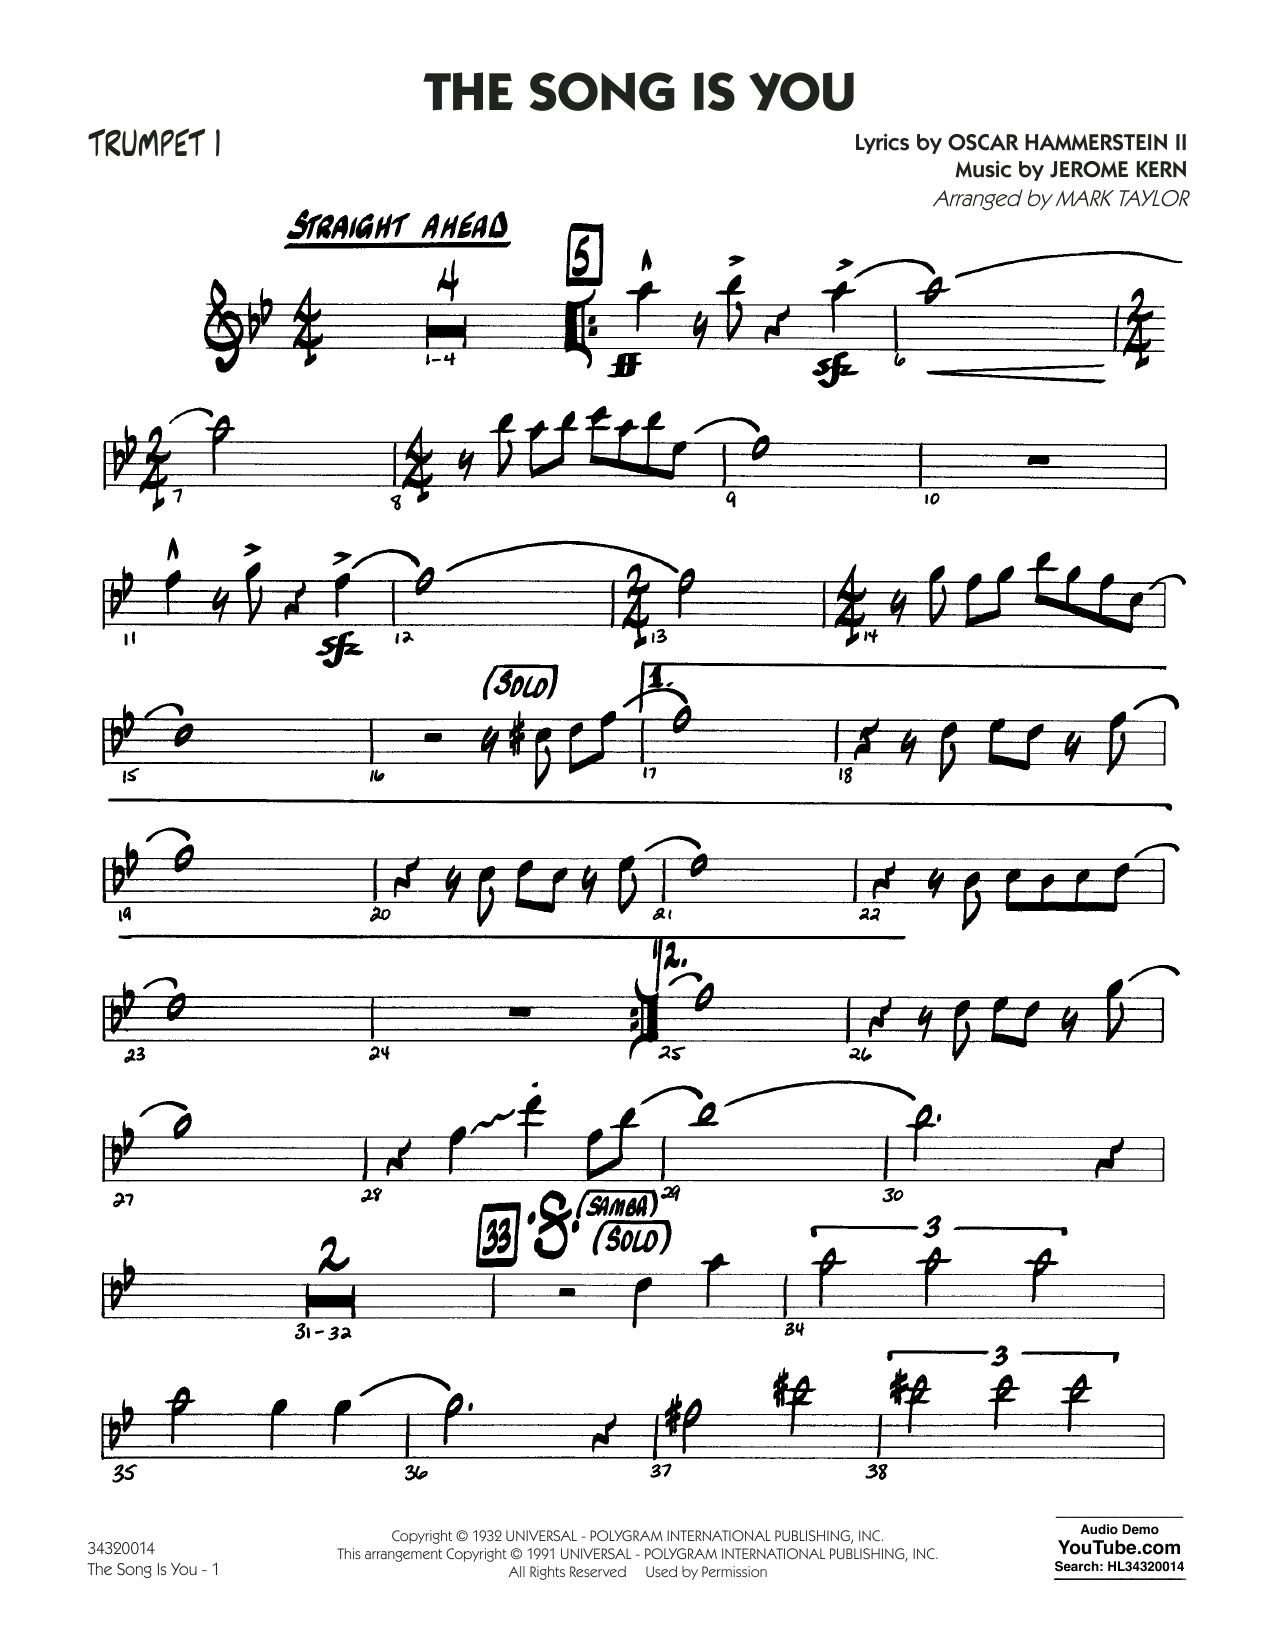 Mark Taylor The Song Is You - Trumpet 1 sheet music notes and chords. Download Printable PDF.